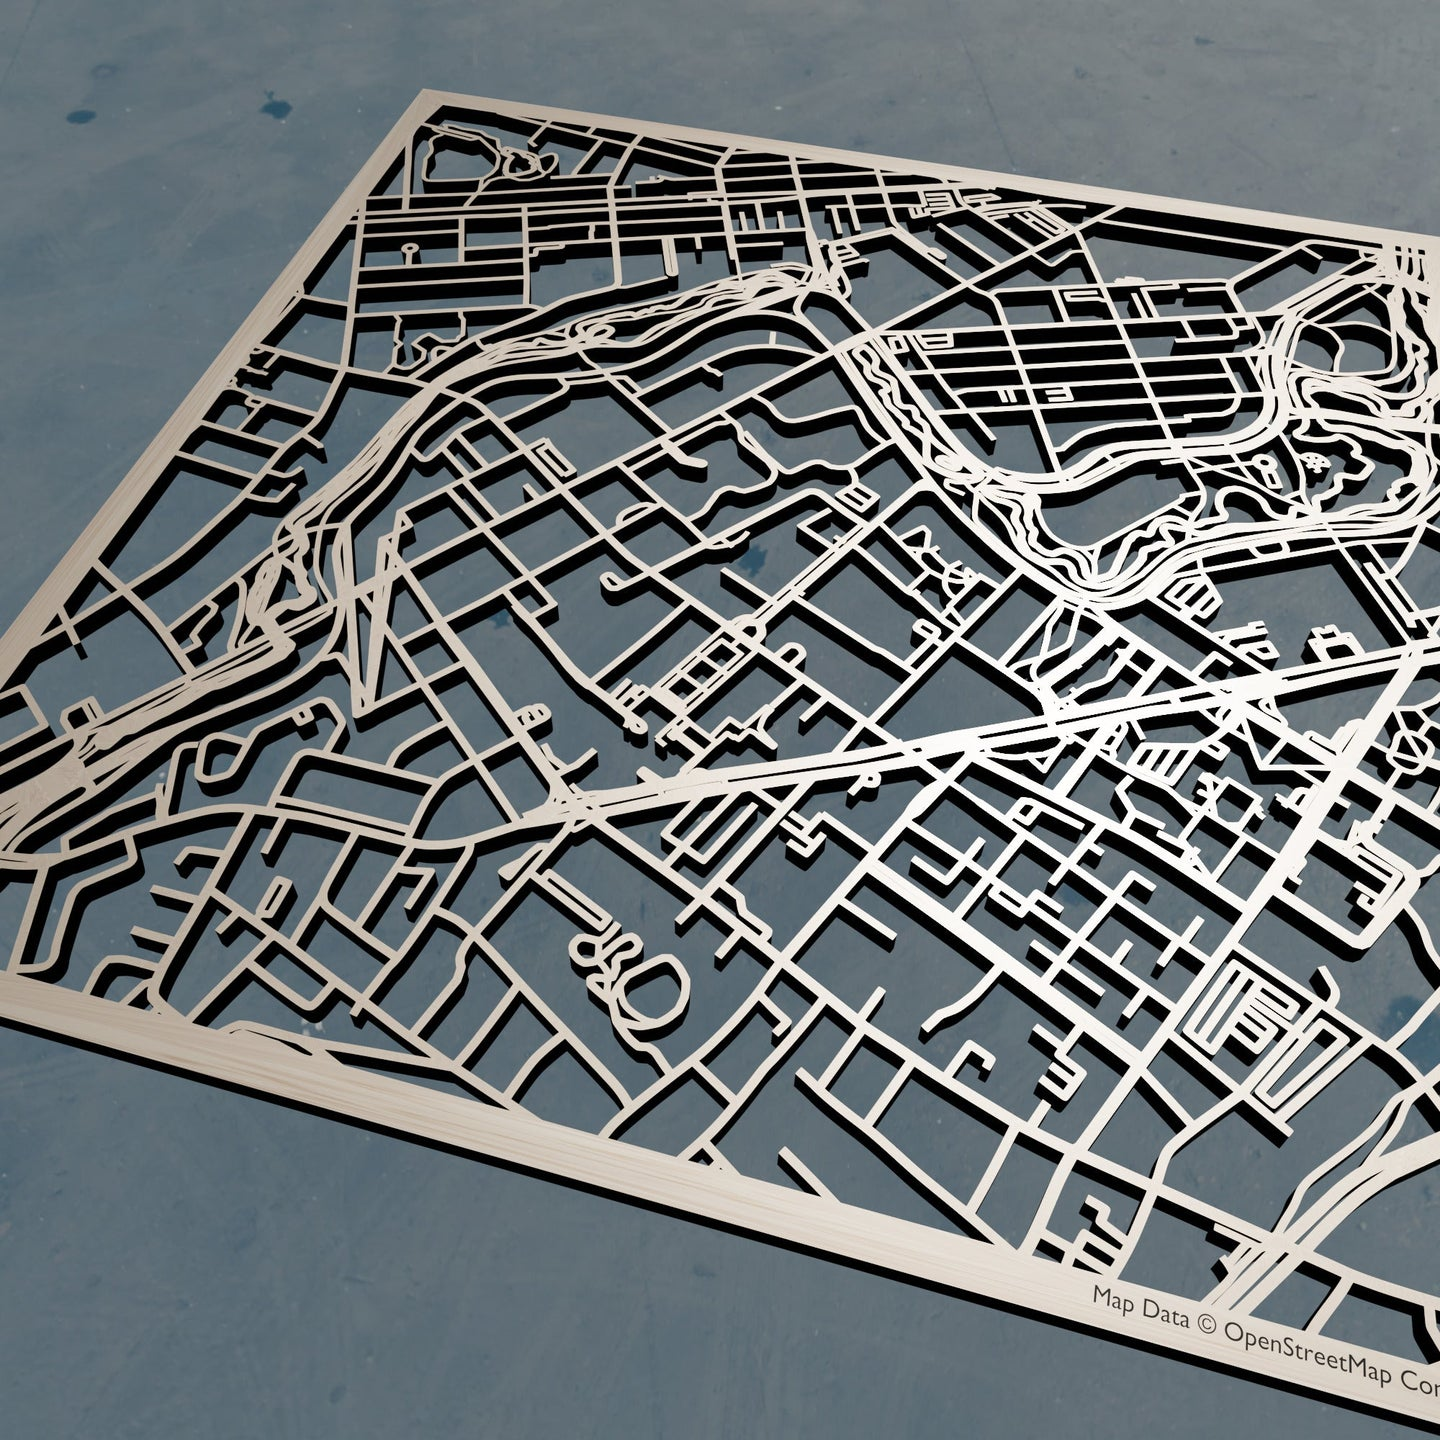 MCPHS University 3D Wooden Laser Cut Campus Map | Unique Gift - Silvan Art